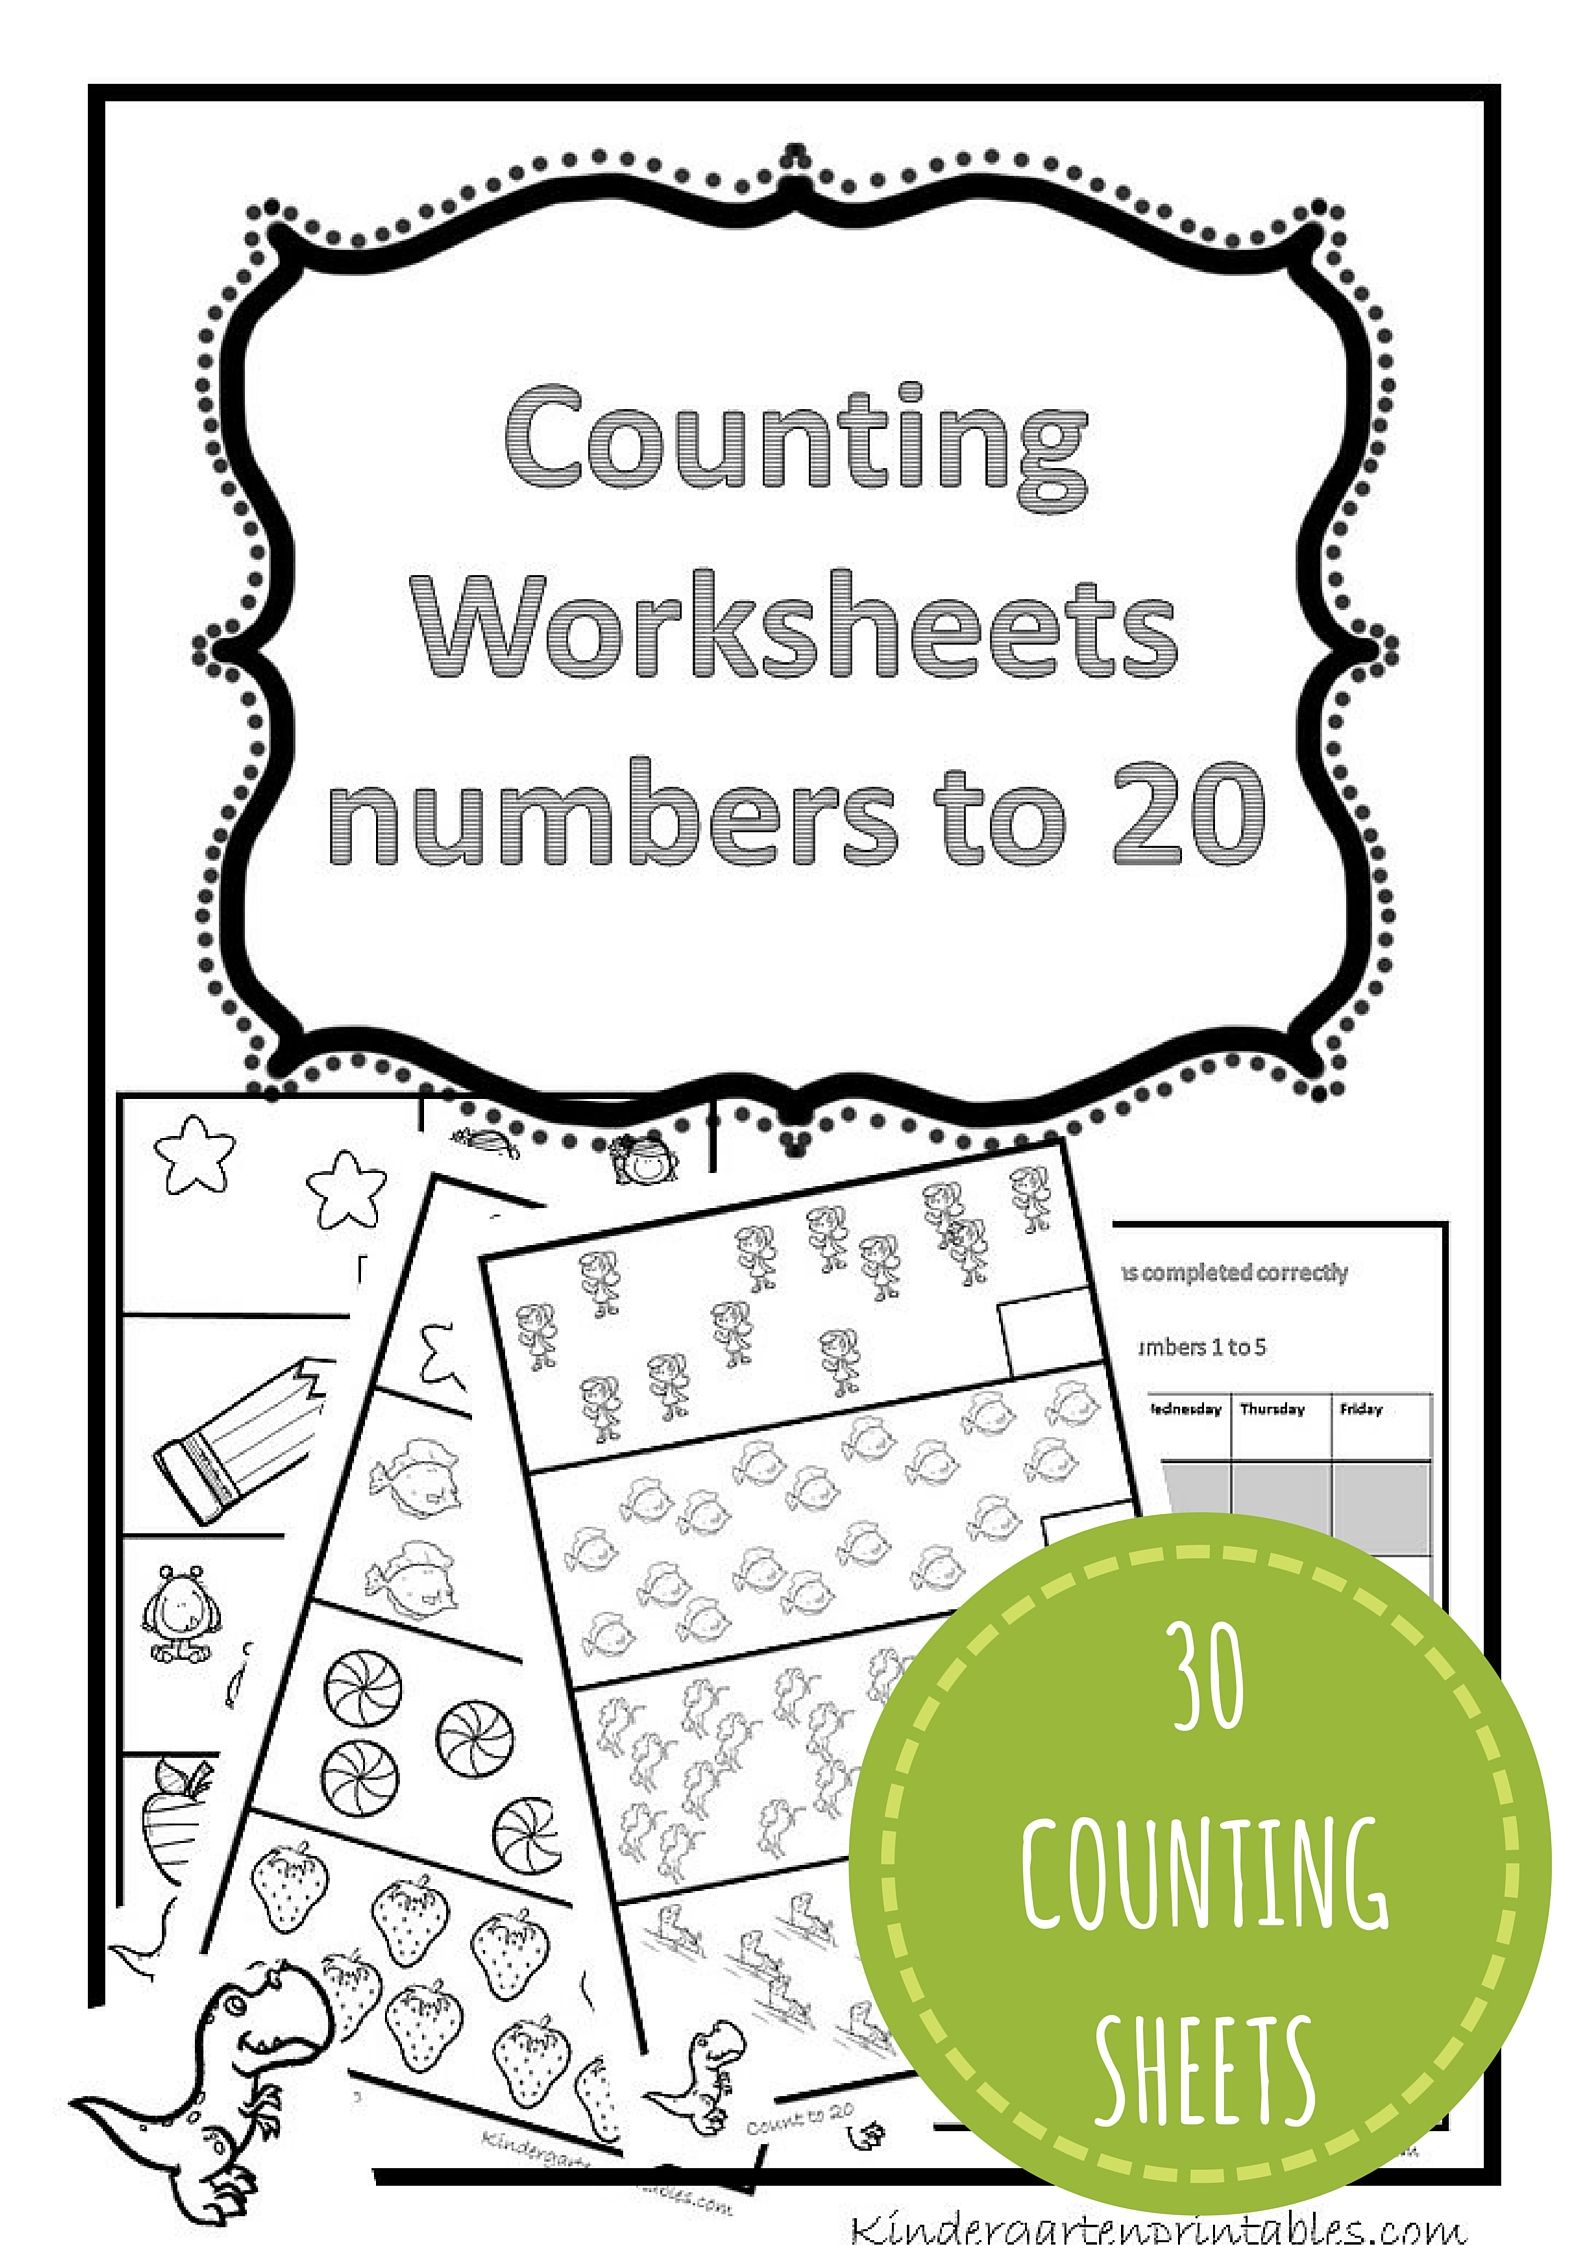 Counting worksheets 1-20 free printable workbook counting worksheets ...